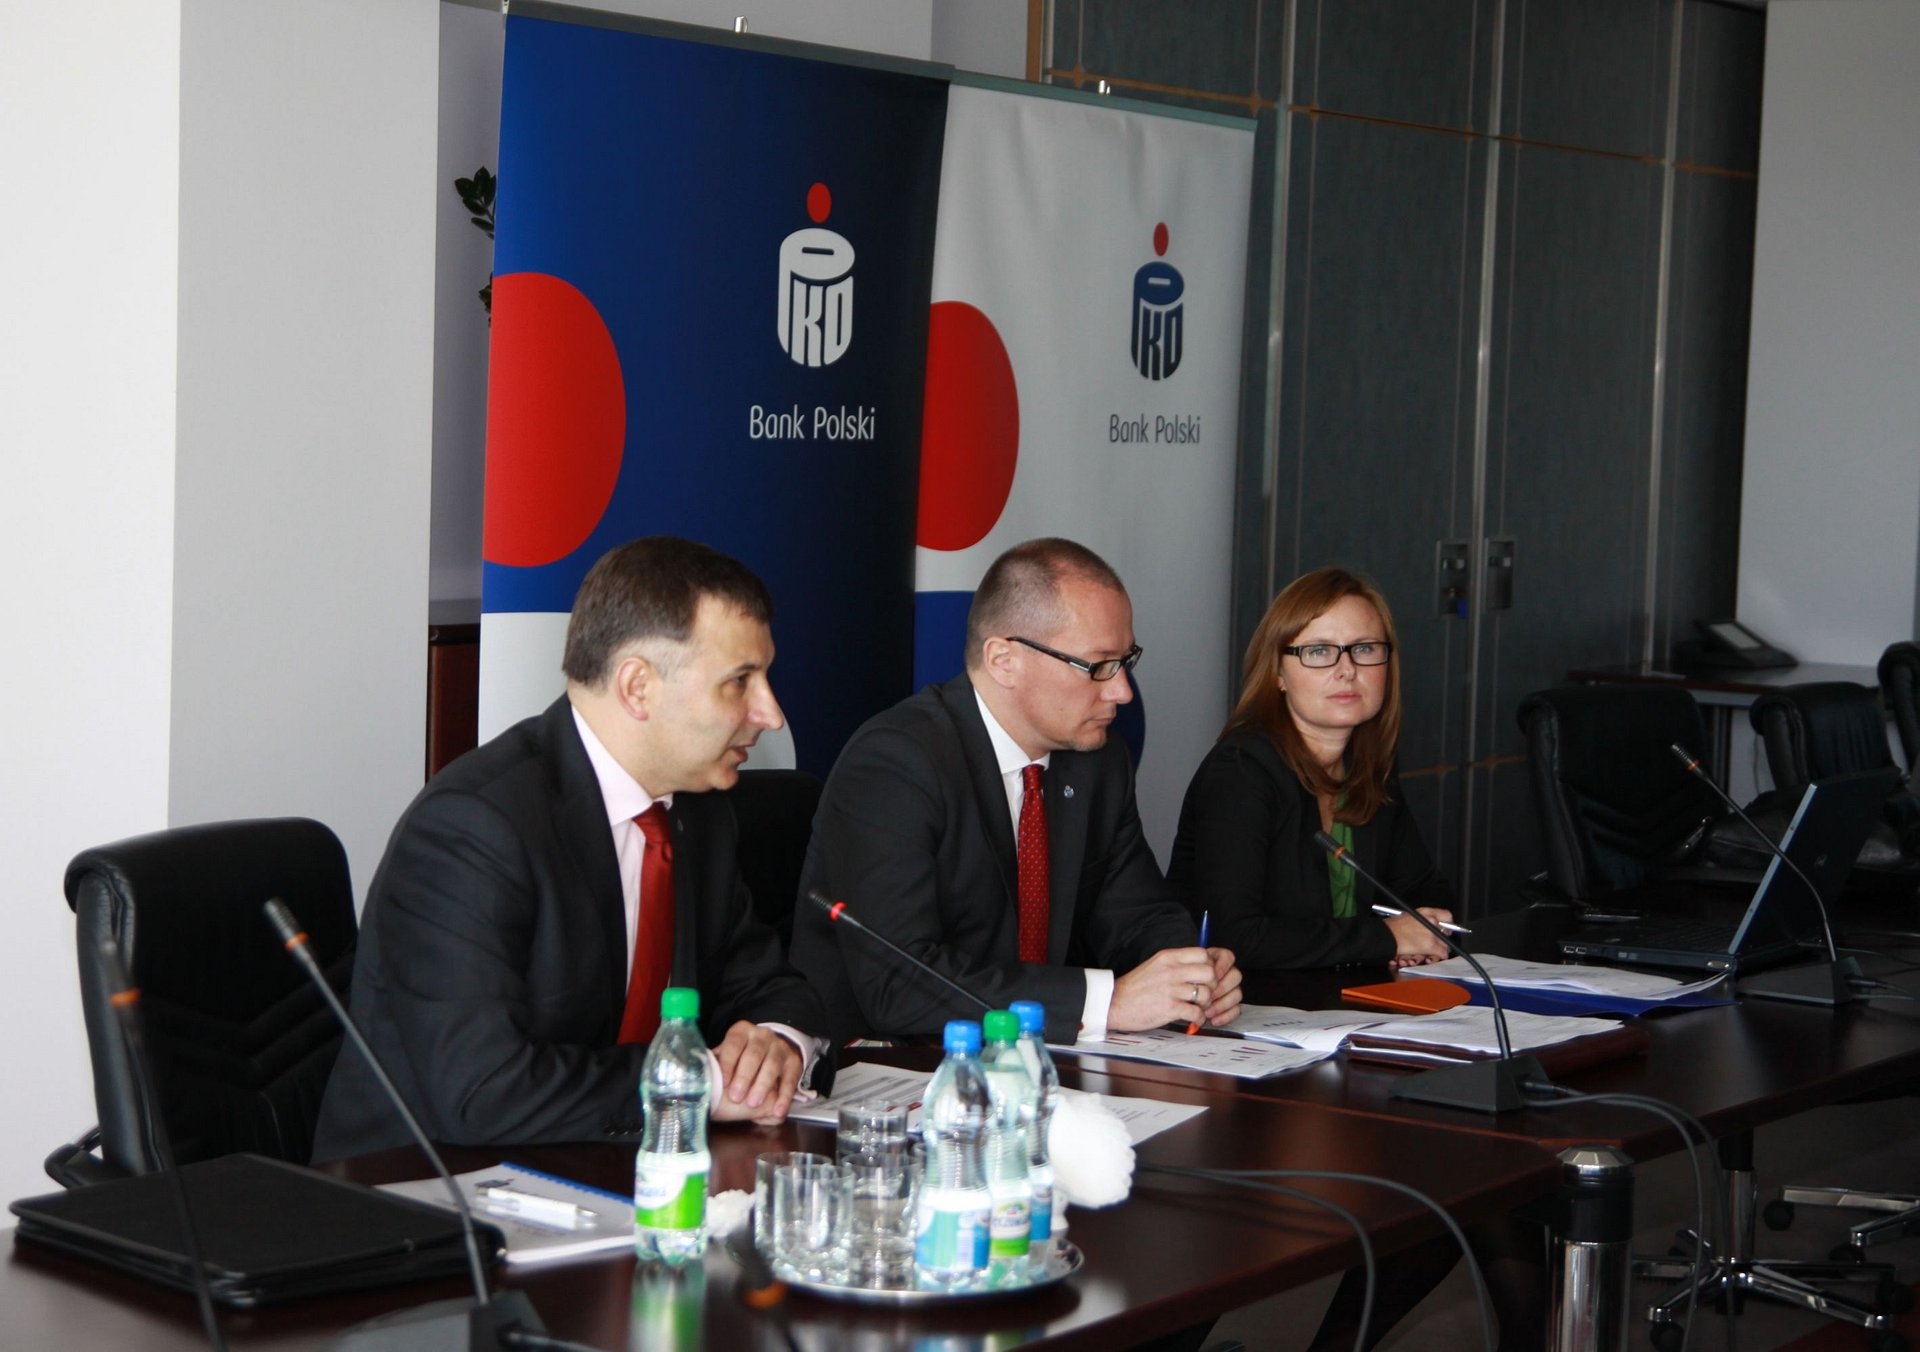 PKO Bank Polski results after first quarter 2011